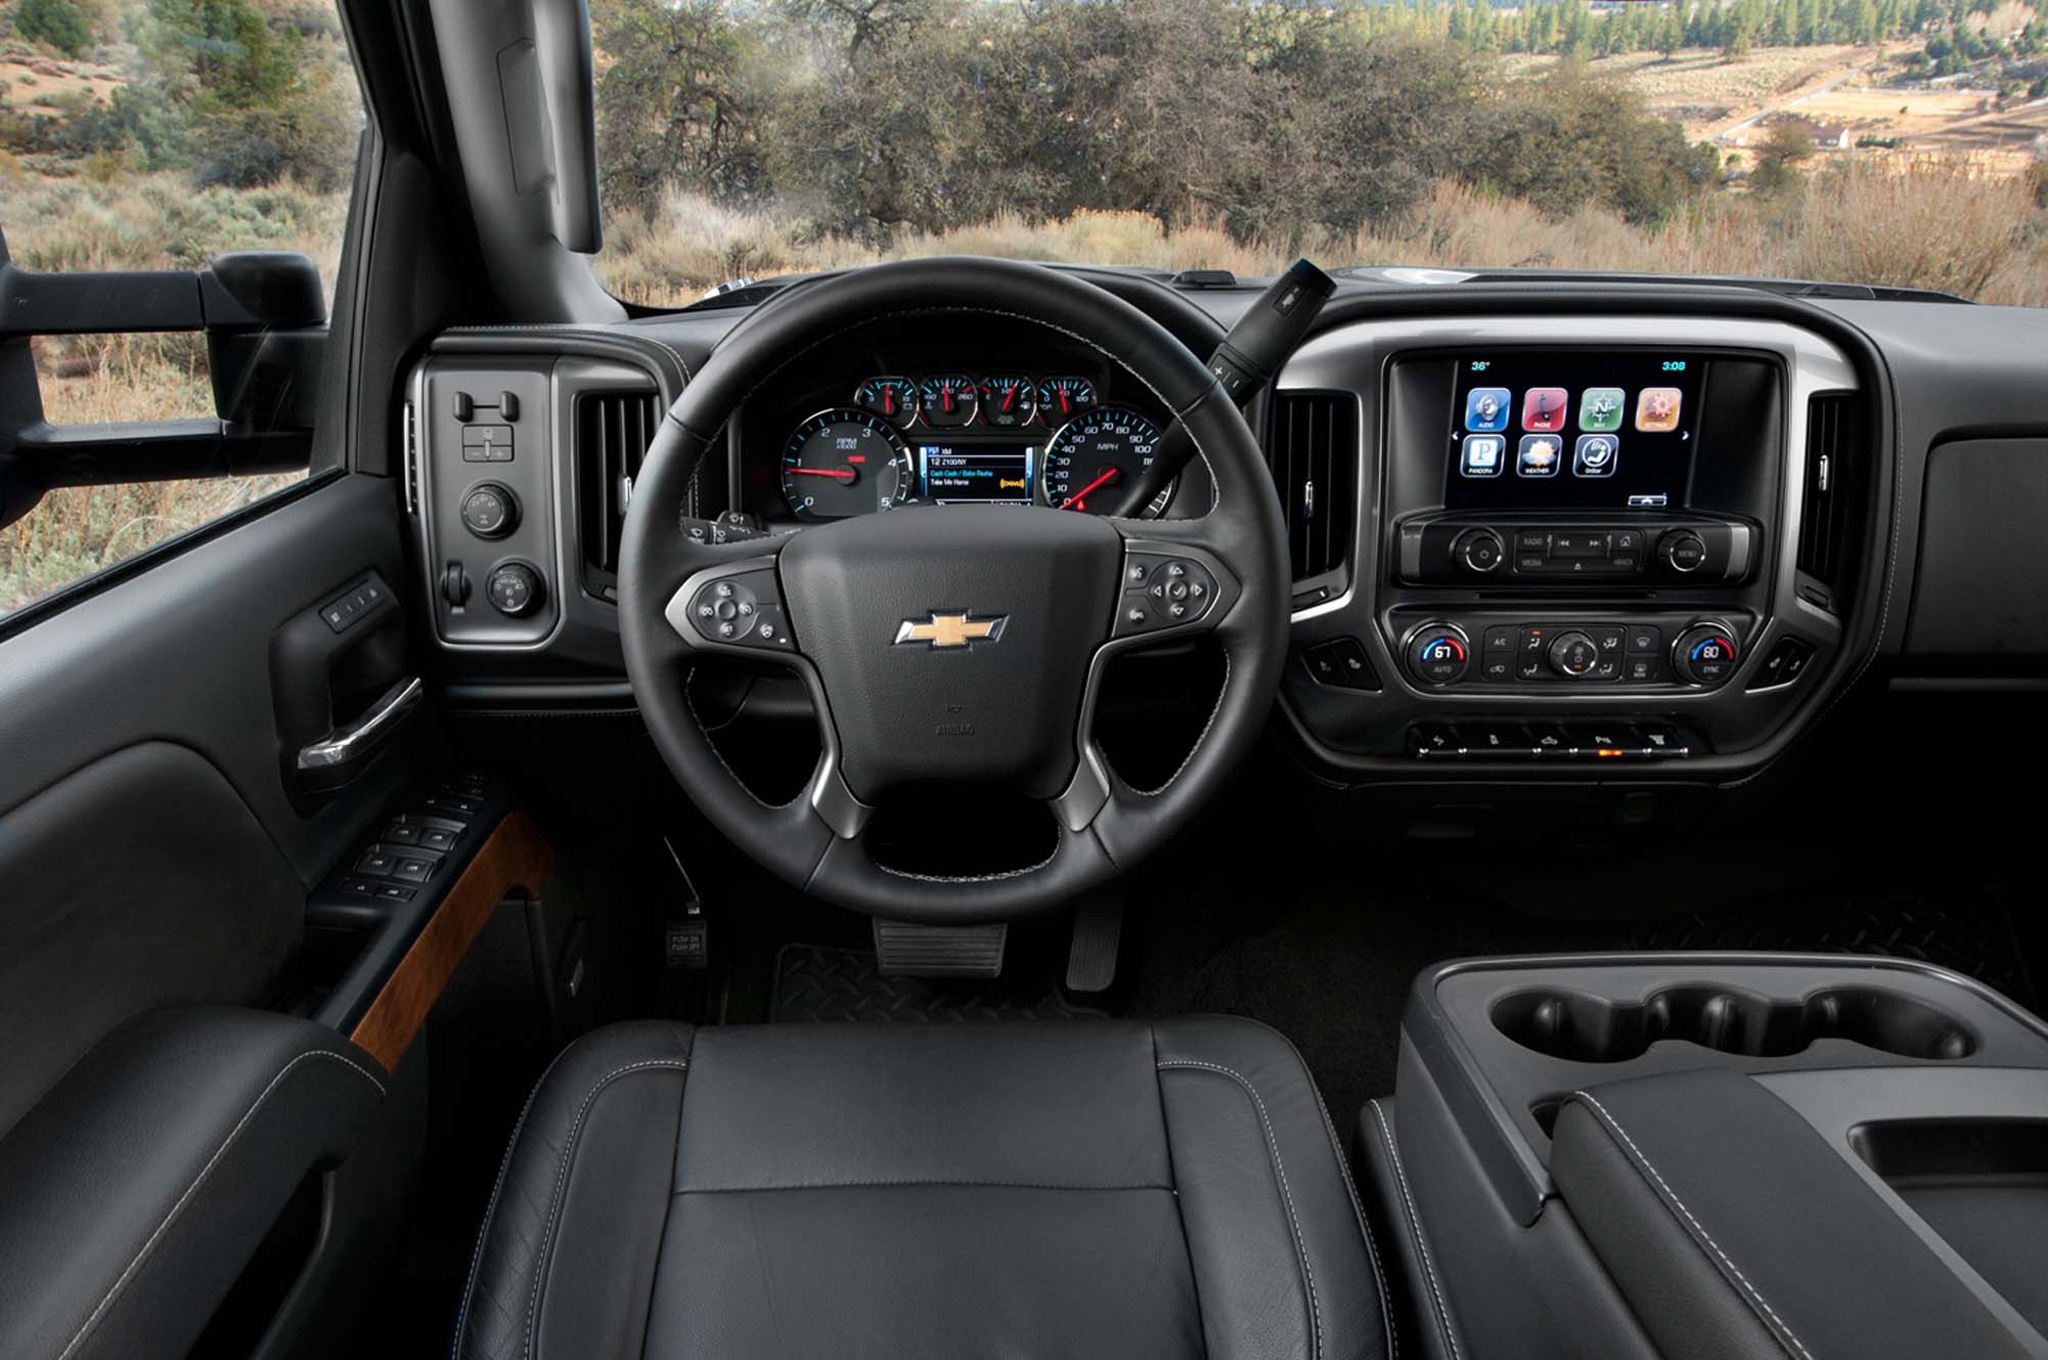 2015 Chevrolet Silverado Hd Dashboard (View 2 of 6)